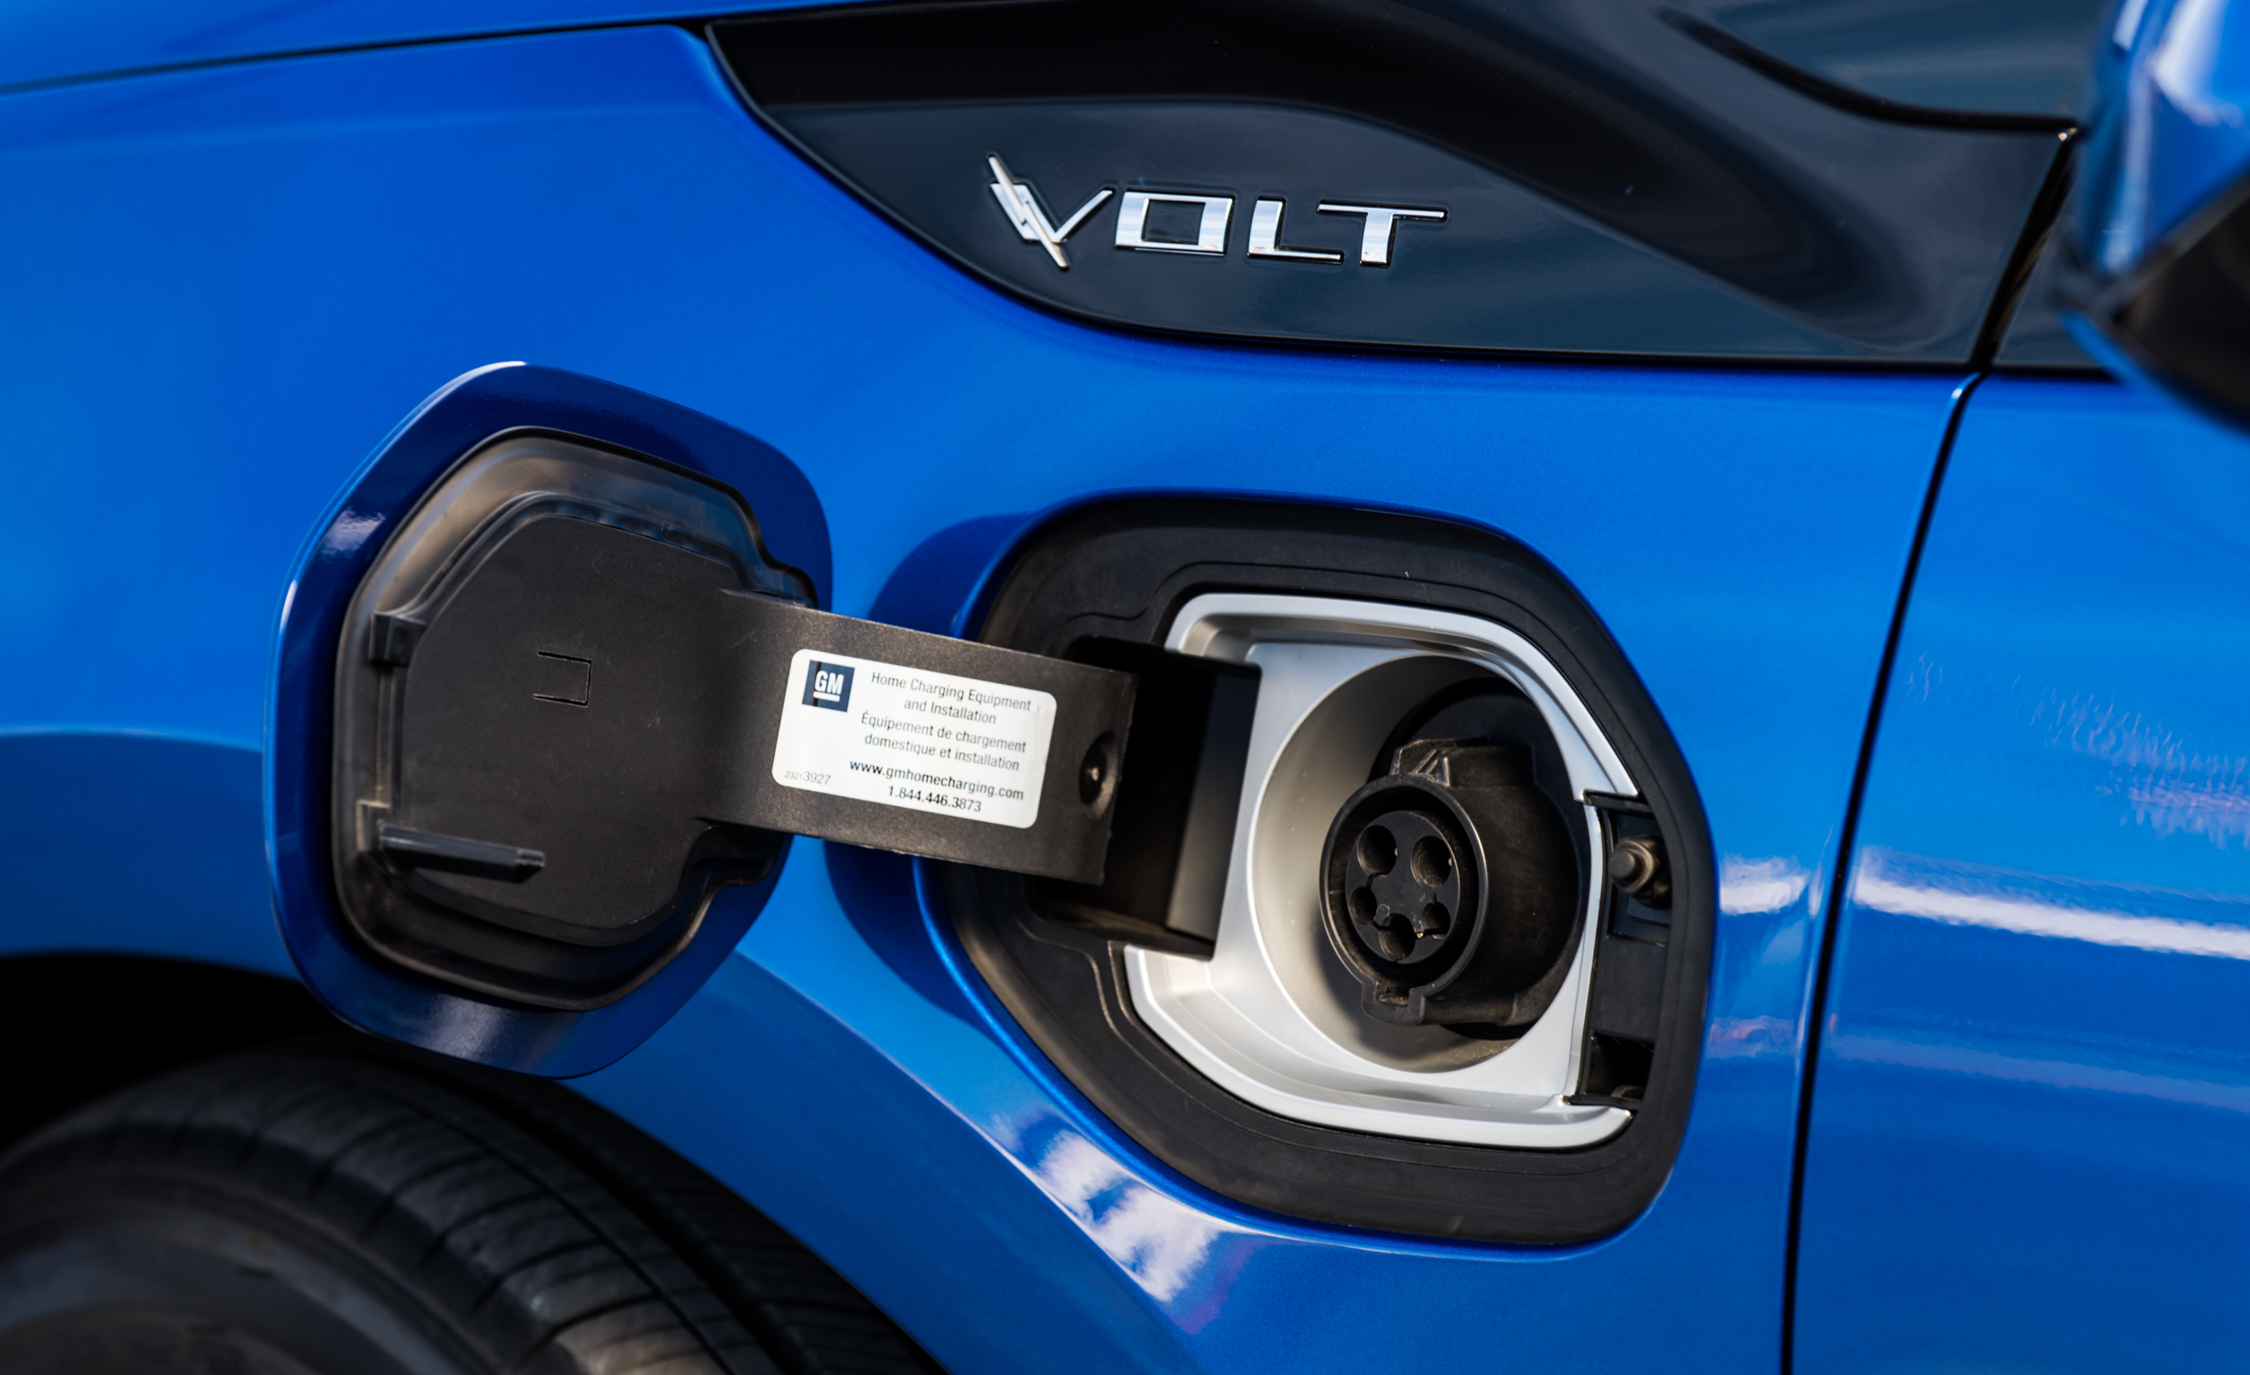 2017 Chevrolet Volt Exterior View Charge Port (View 14 of 16)